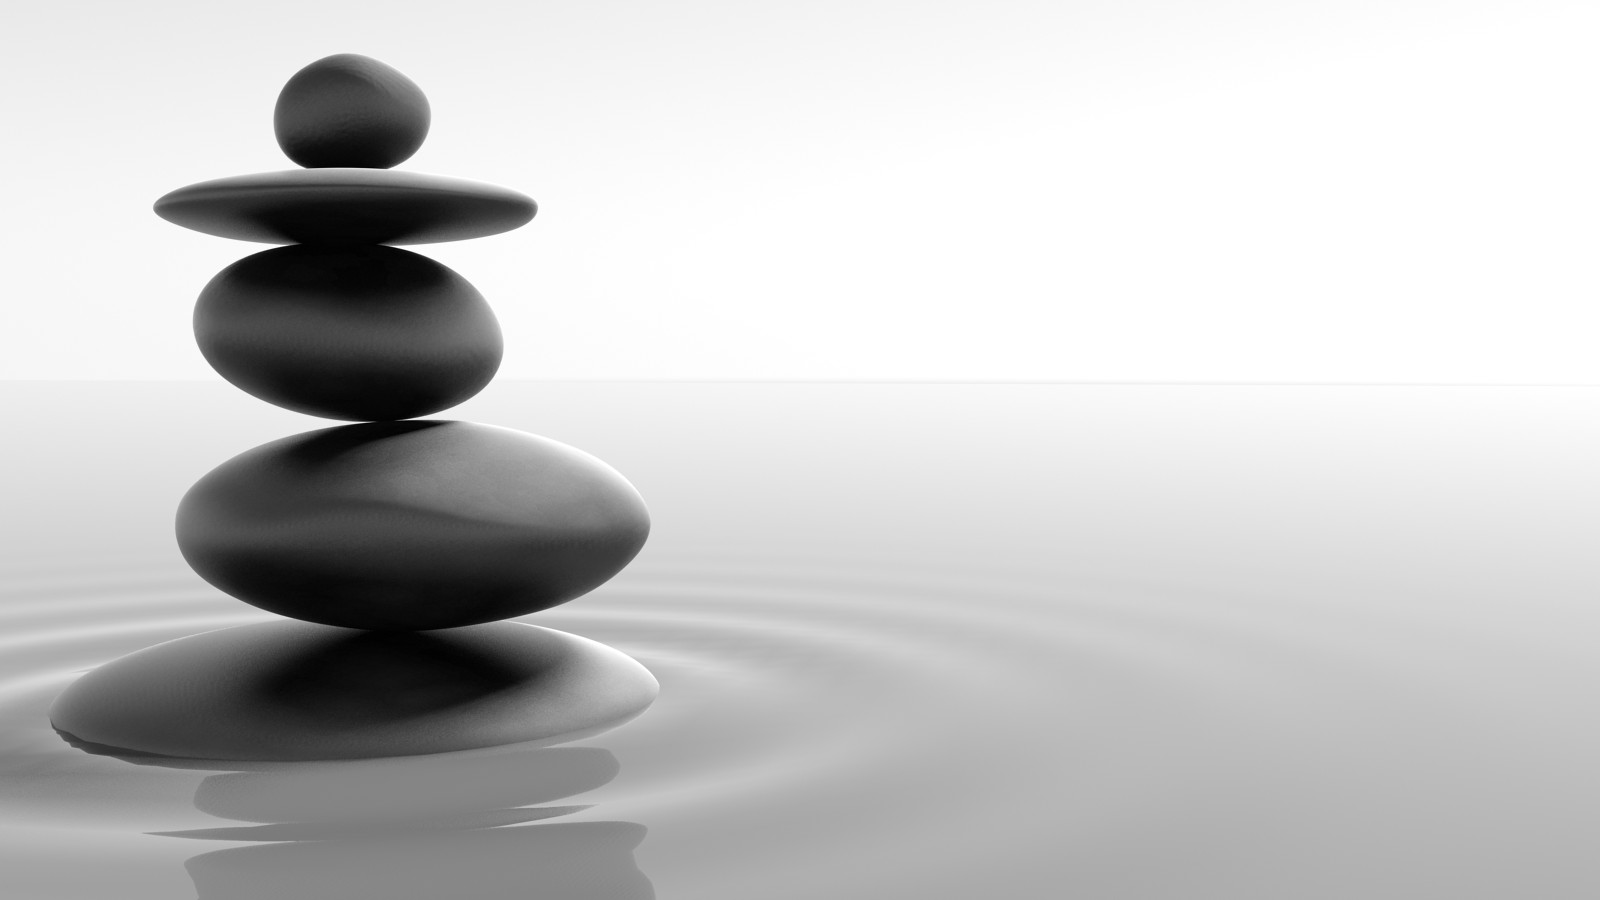 Pietre Zen Tao in Equilibrio - Download Wallpaper